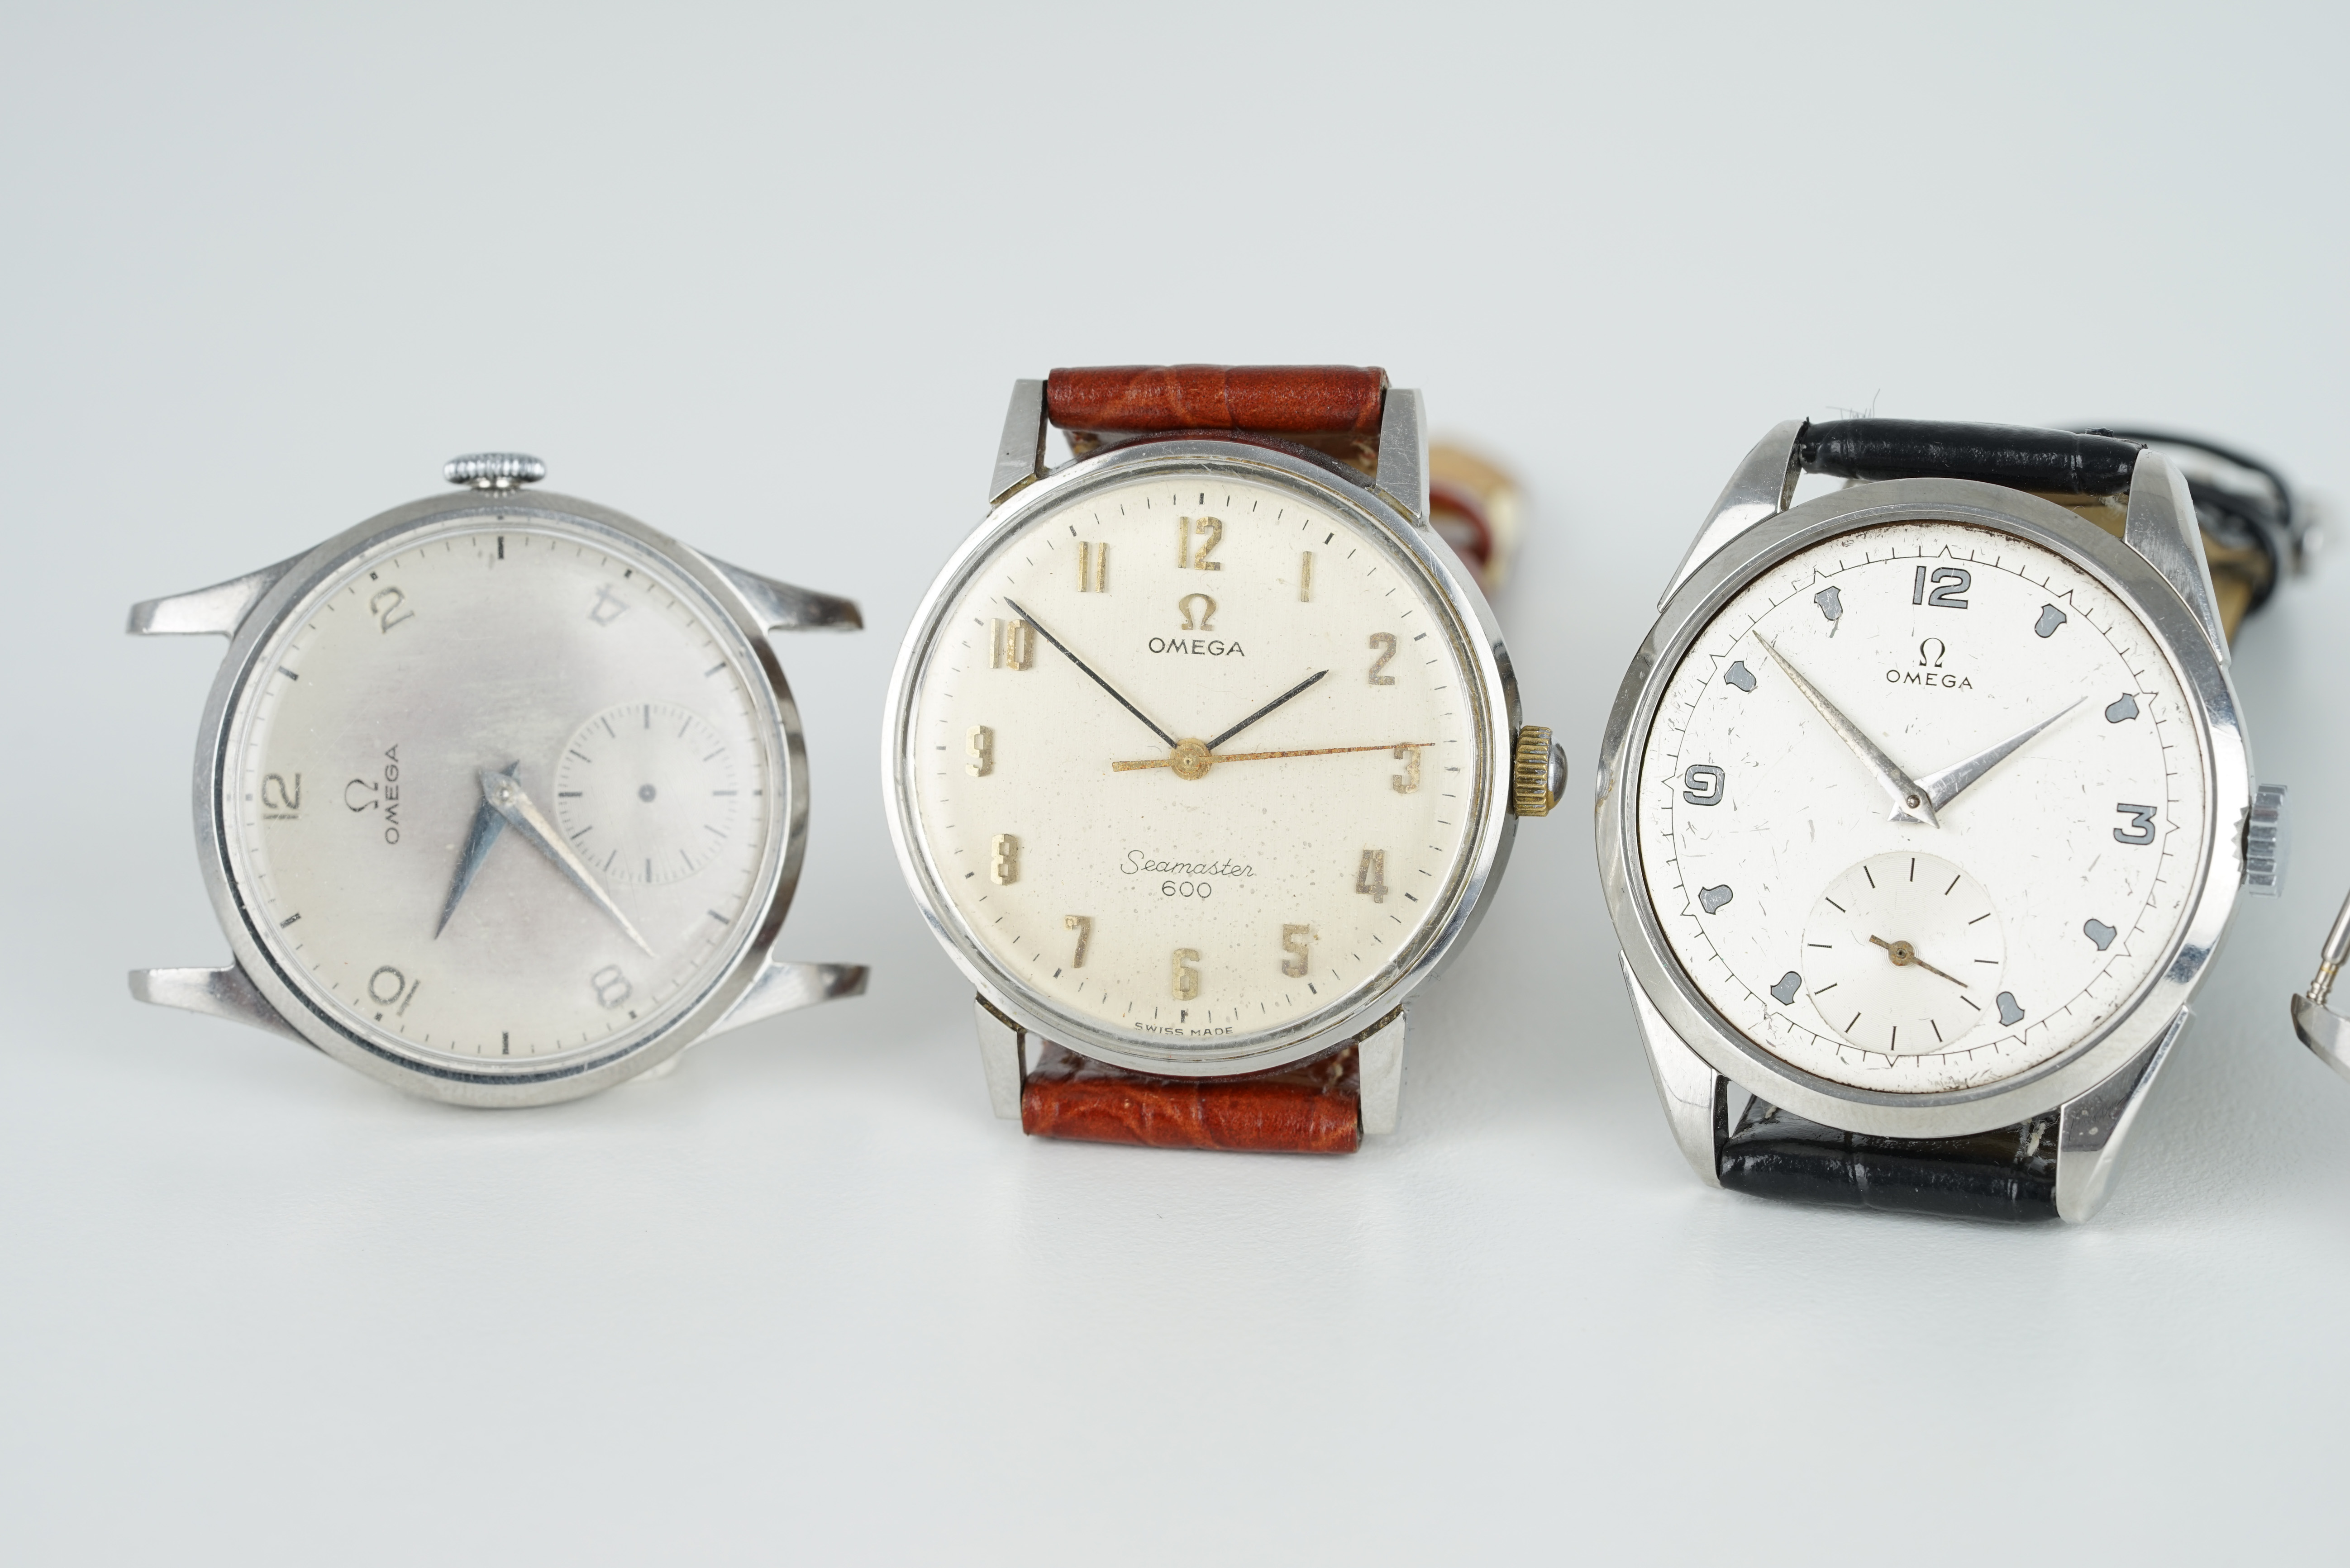 GROUP OF 4 OMEGA WRISTWATCHES, all stainless steel cases with manually wound movements inside, all - Image 2 of 3